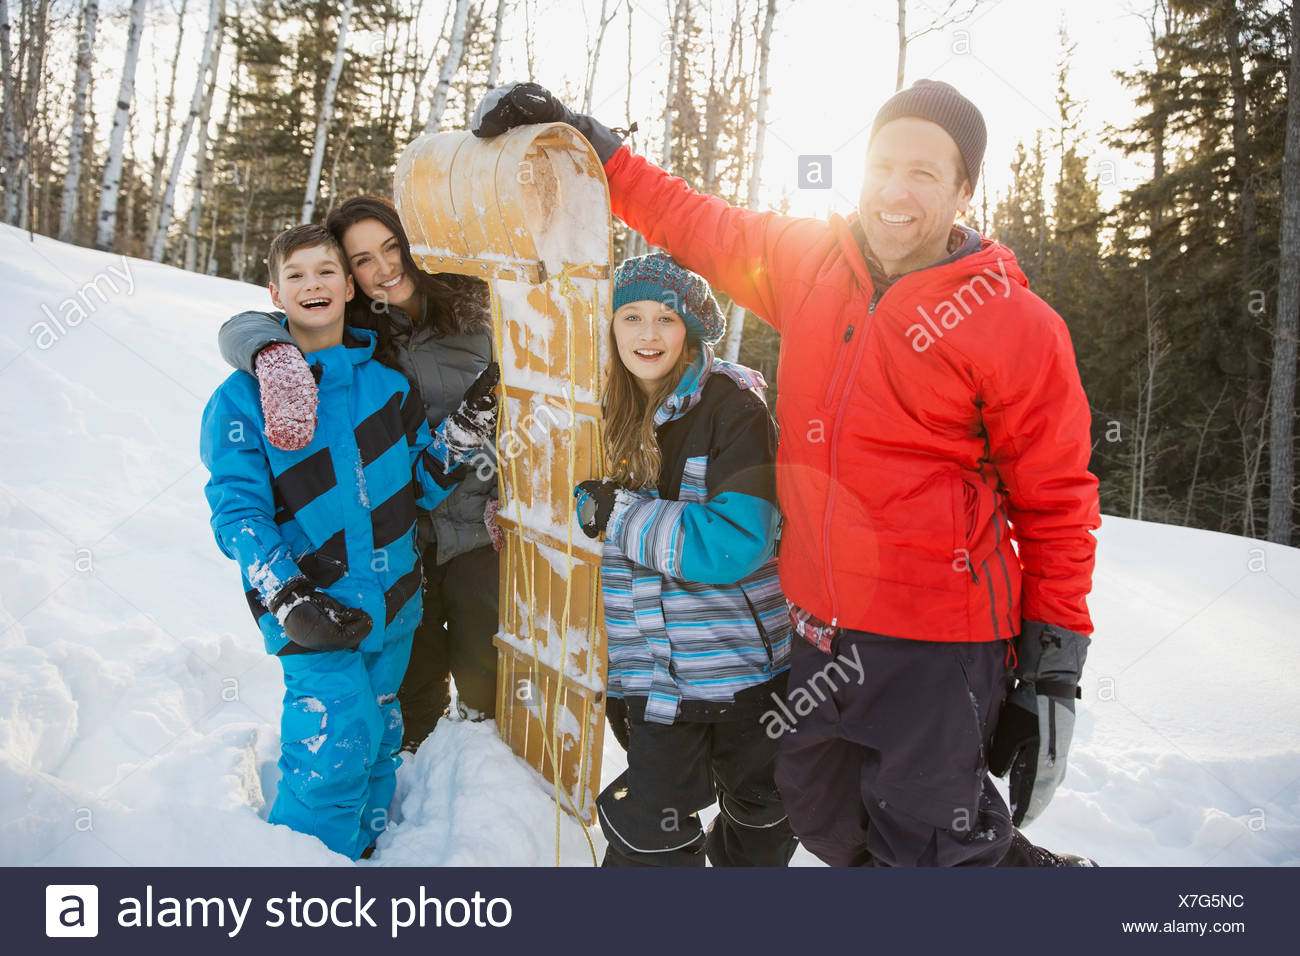 Portrait of family with toboggan in snow - Stock Image